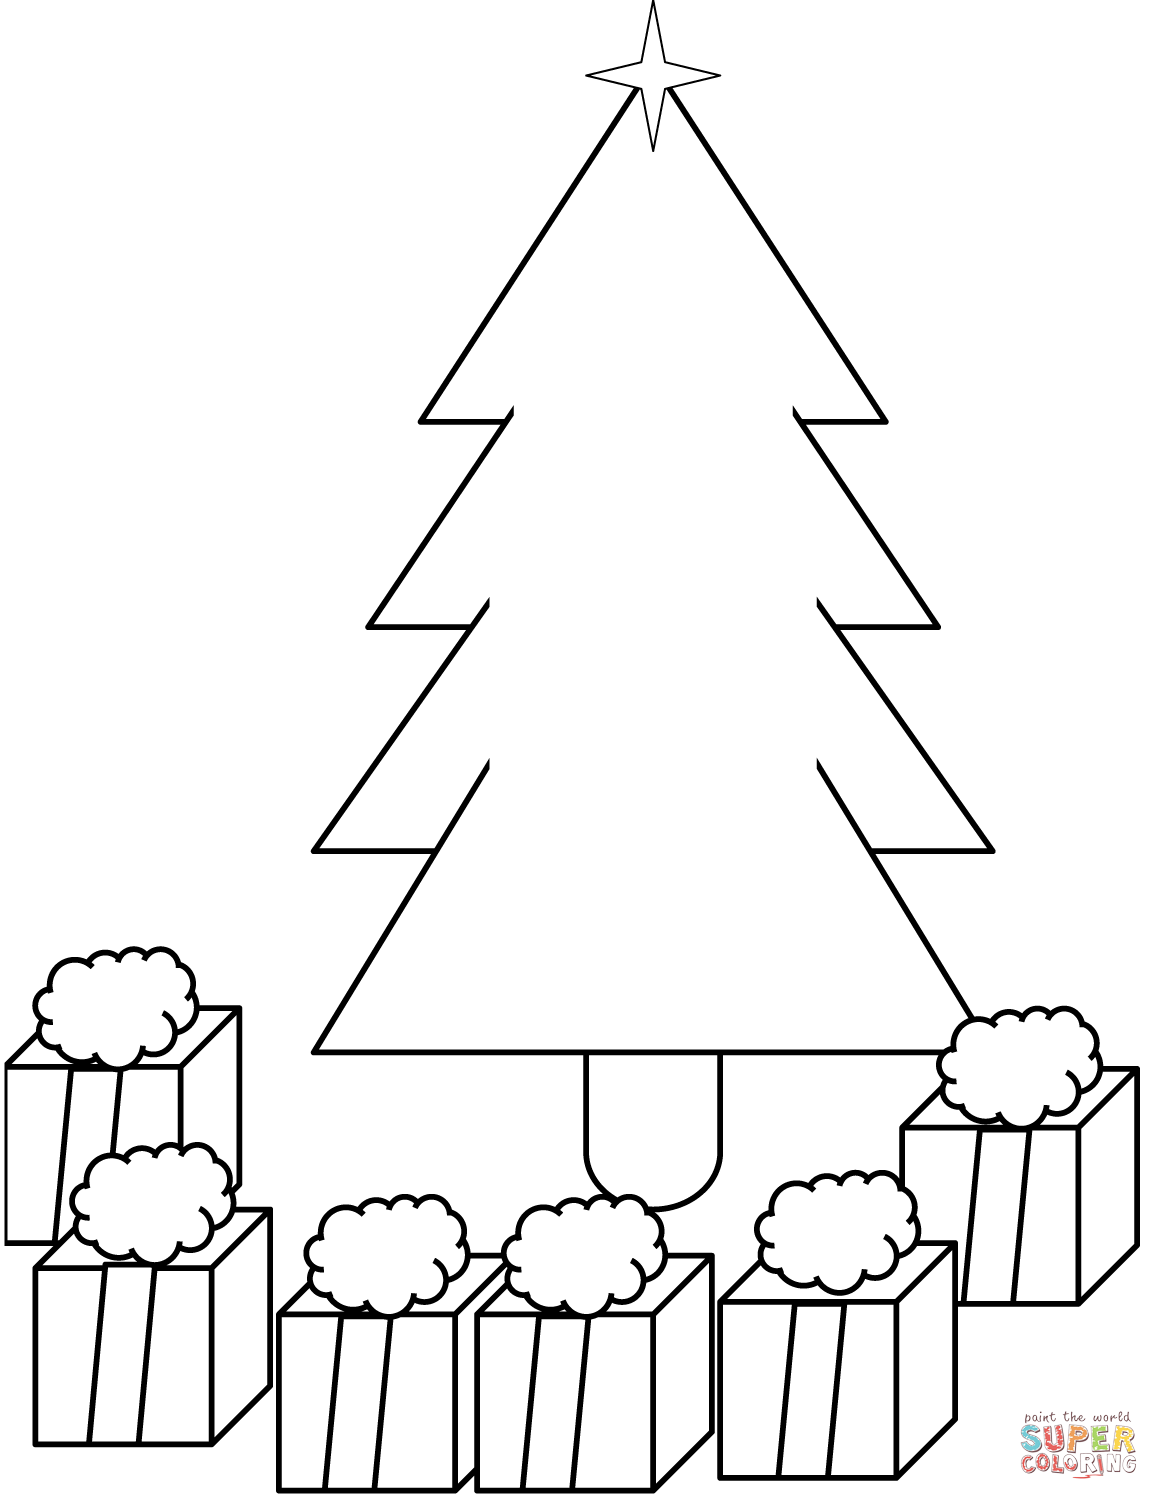 Xmas Tree With Presents Under It Coloring Page